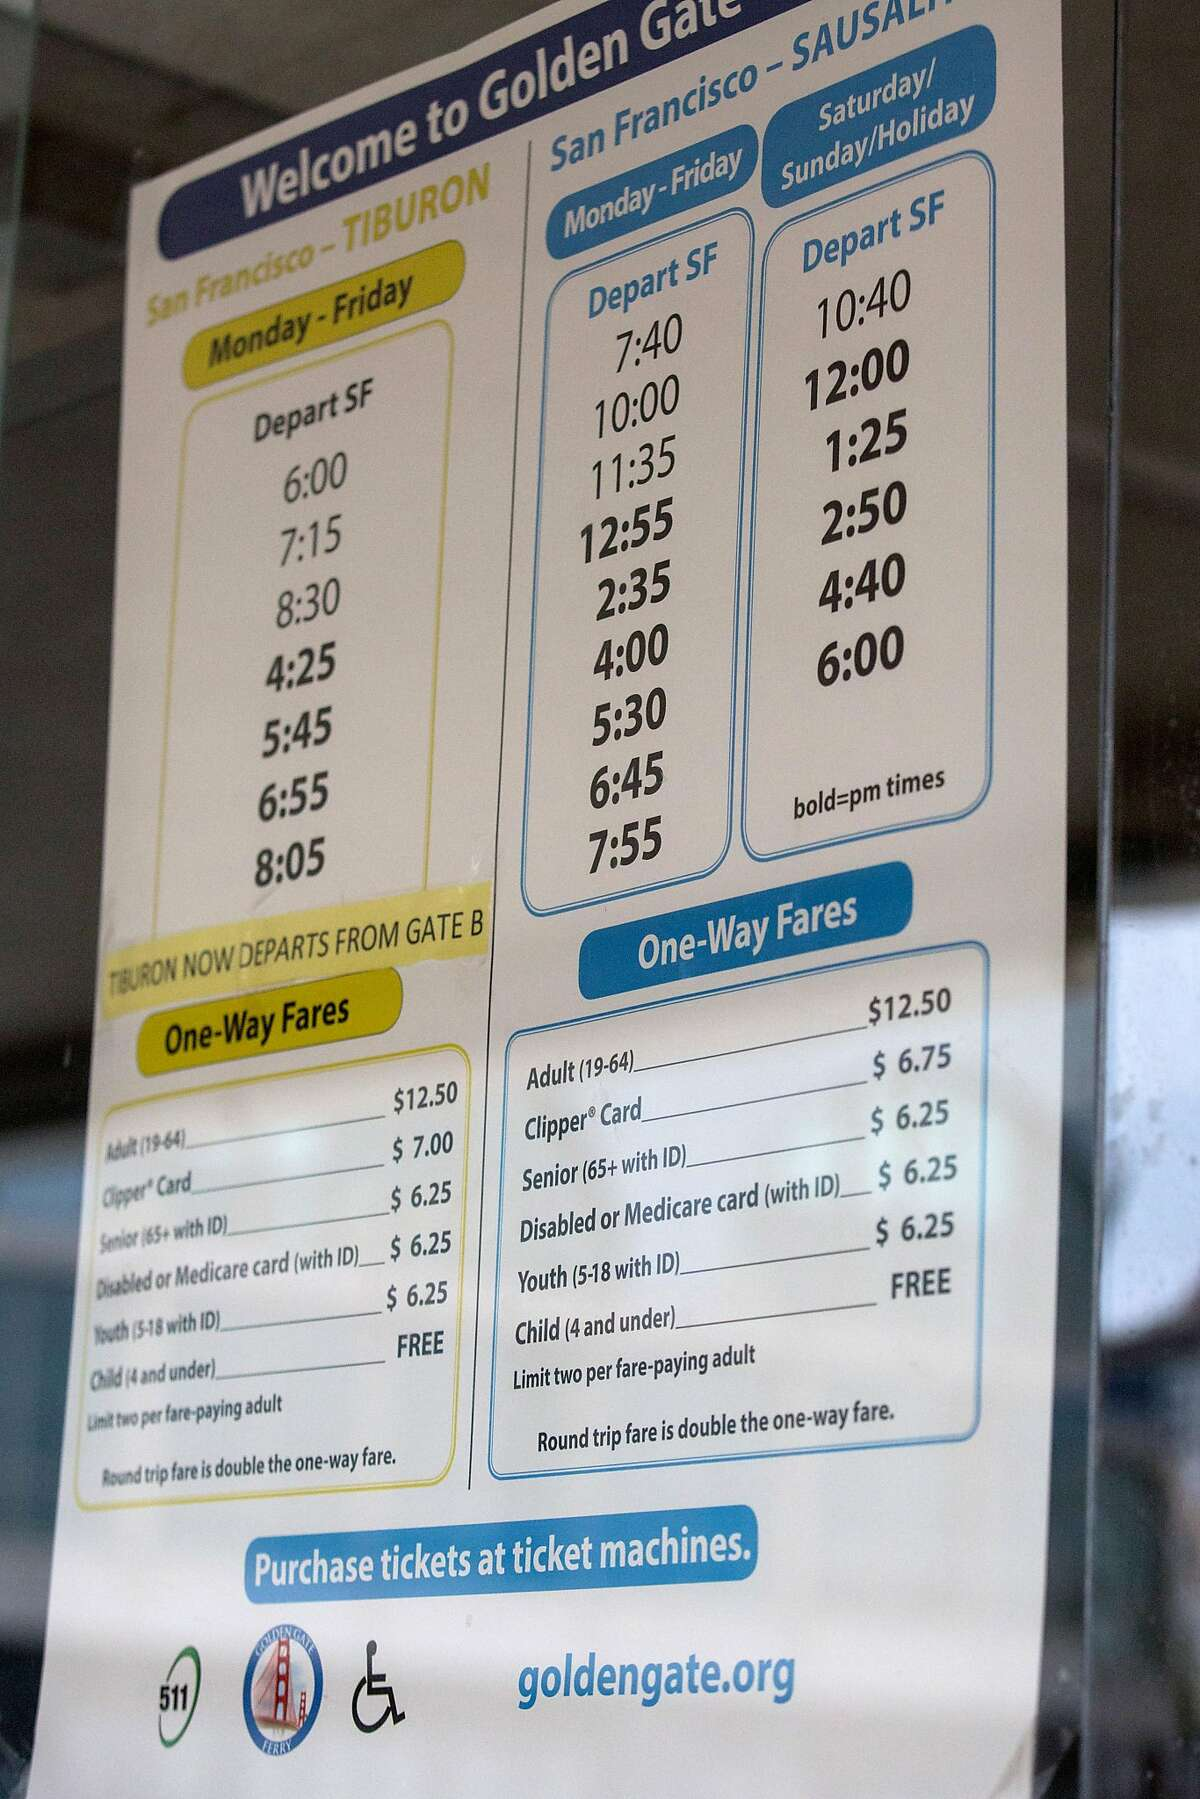 Poster listing schedule and pricing for the Golden Gate transit ferry. Wednesday, June 19, 2019. San Francisco, Calif.